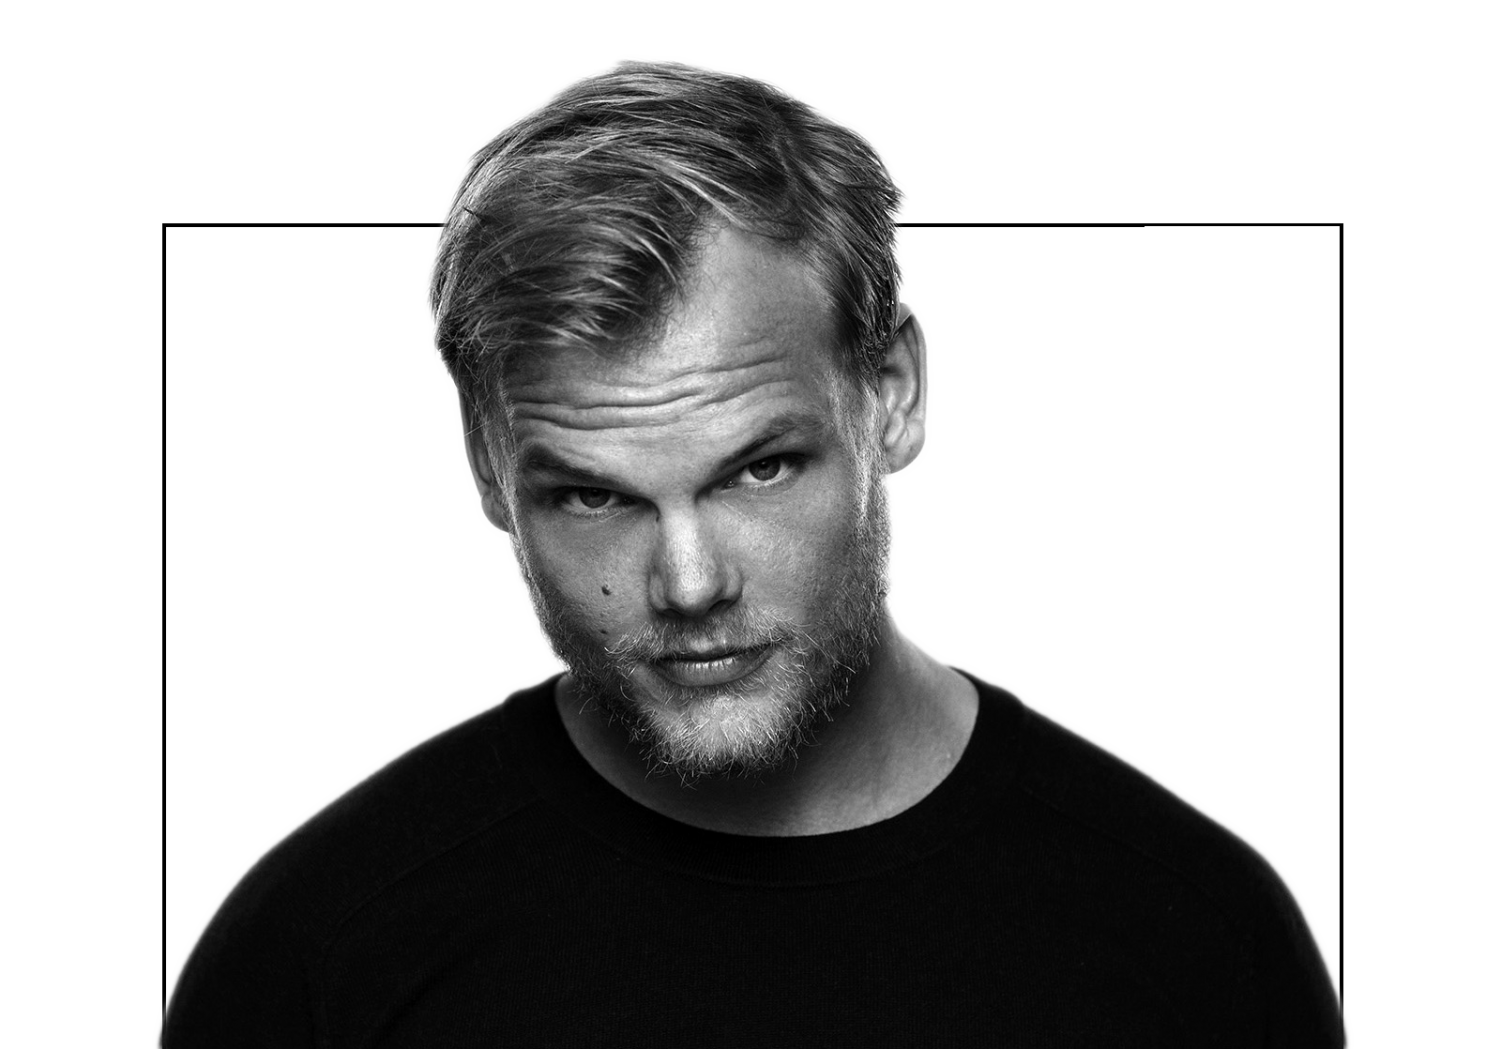 Autopsies find nothing suspicious in DJ Avicii's death in Oman